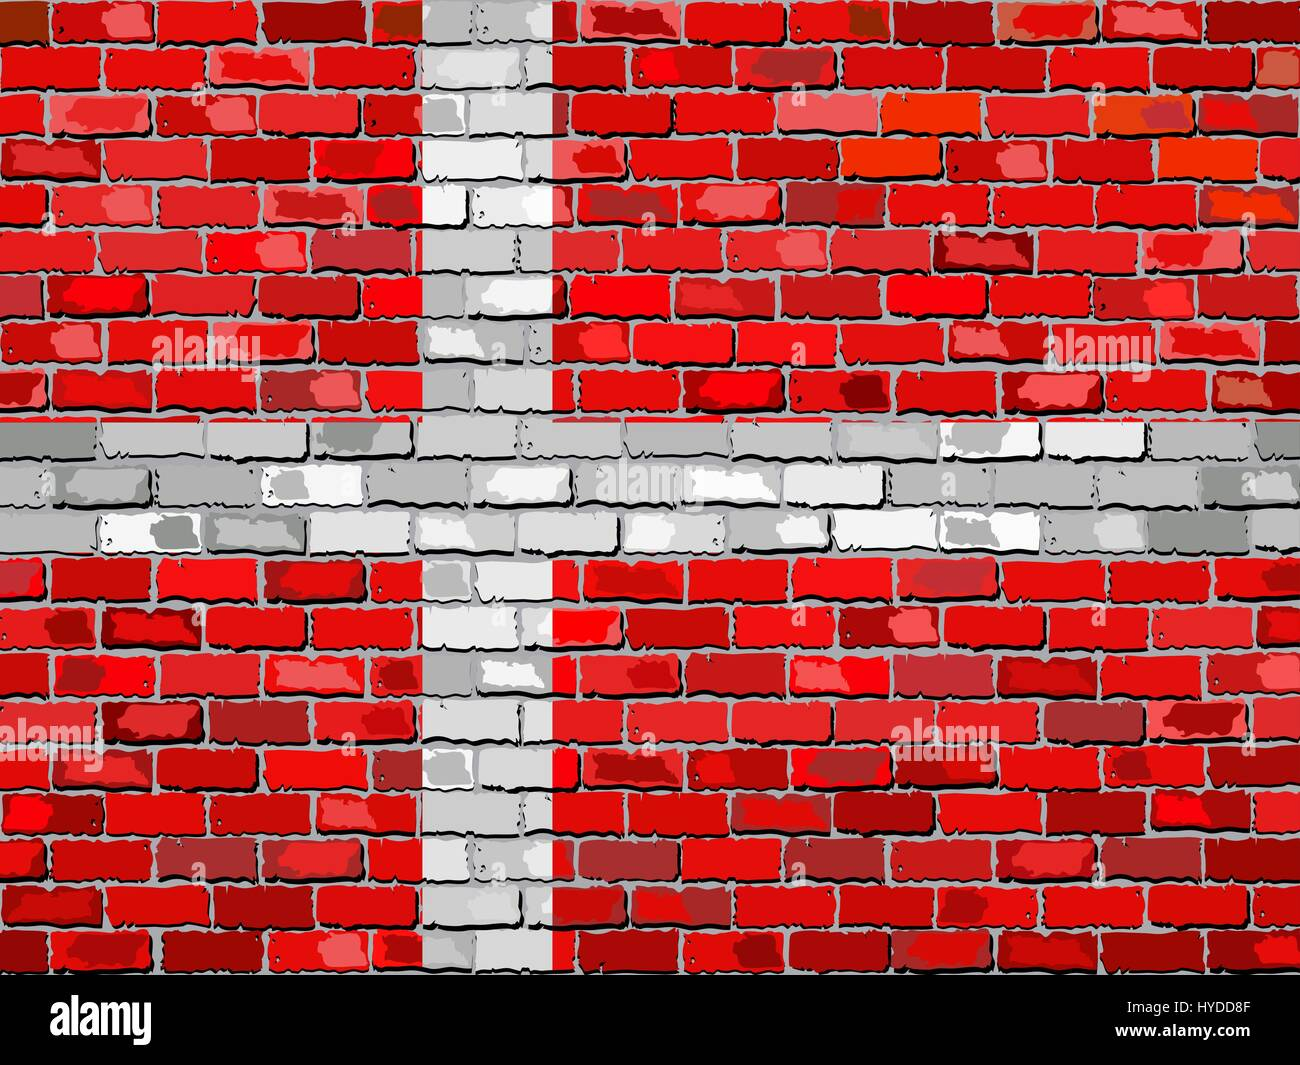 Flag of Denmark on a brick wall - Illustration,  Danish flag on brick textured background,  Abstract grunge mosaic - Stock Vector